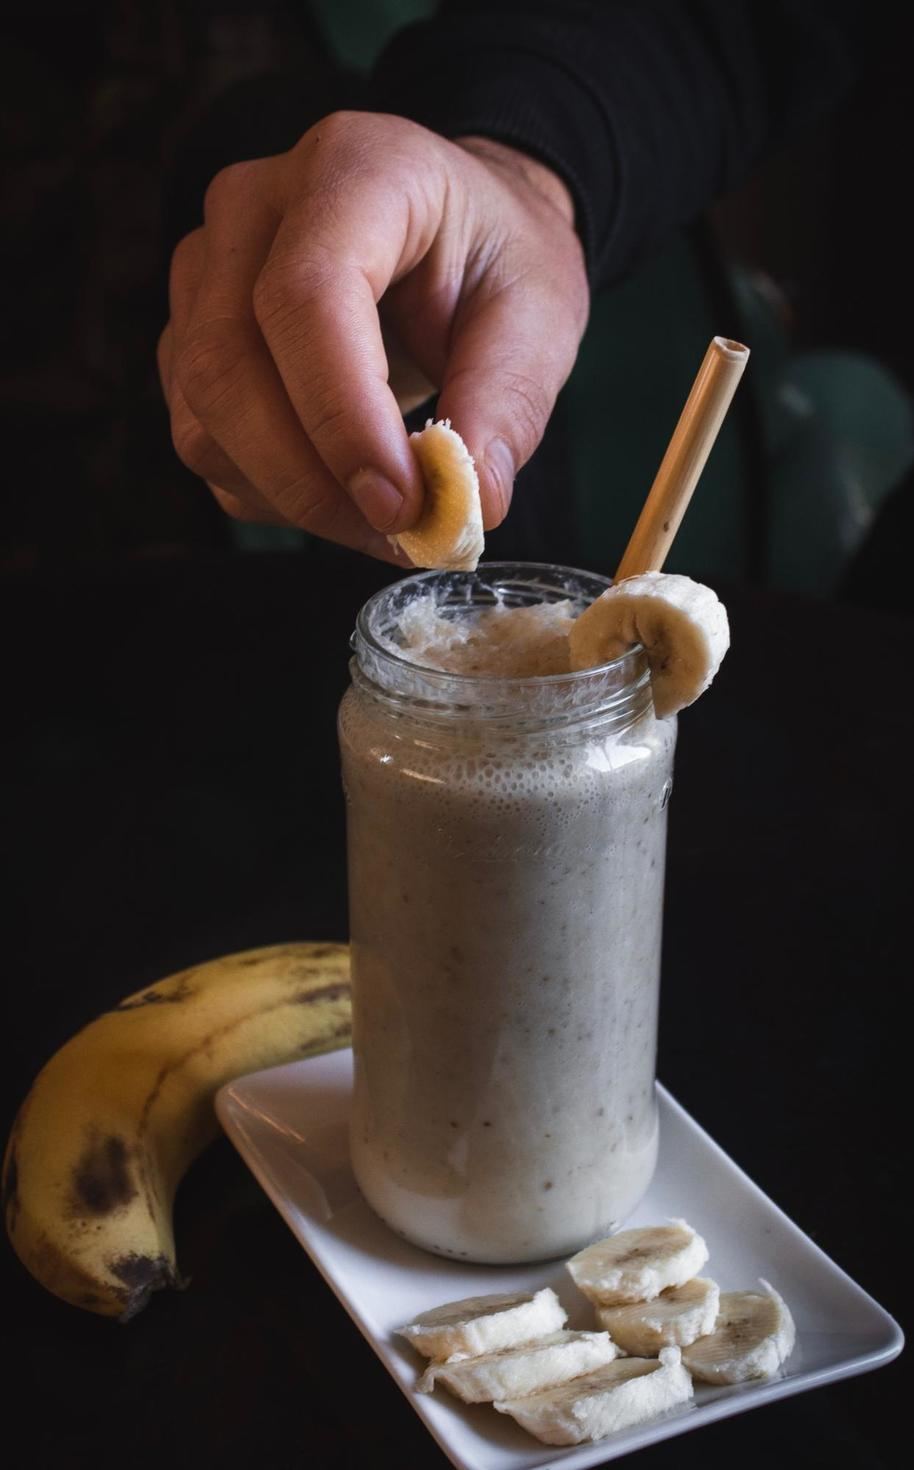 Guys, Here's A Home-Made Vegan Protein Shake For Each Day Of The Week!